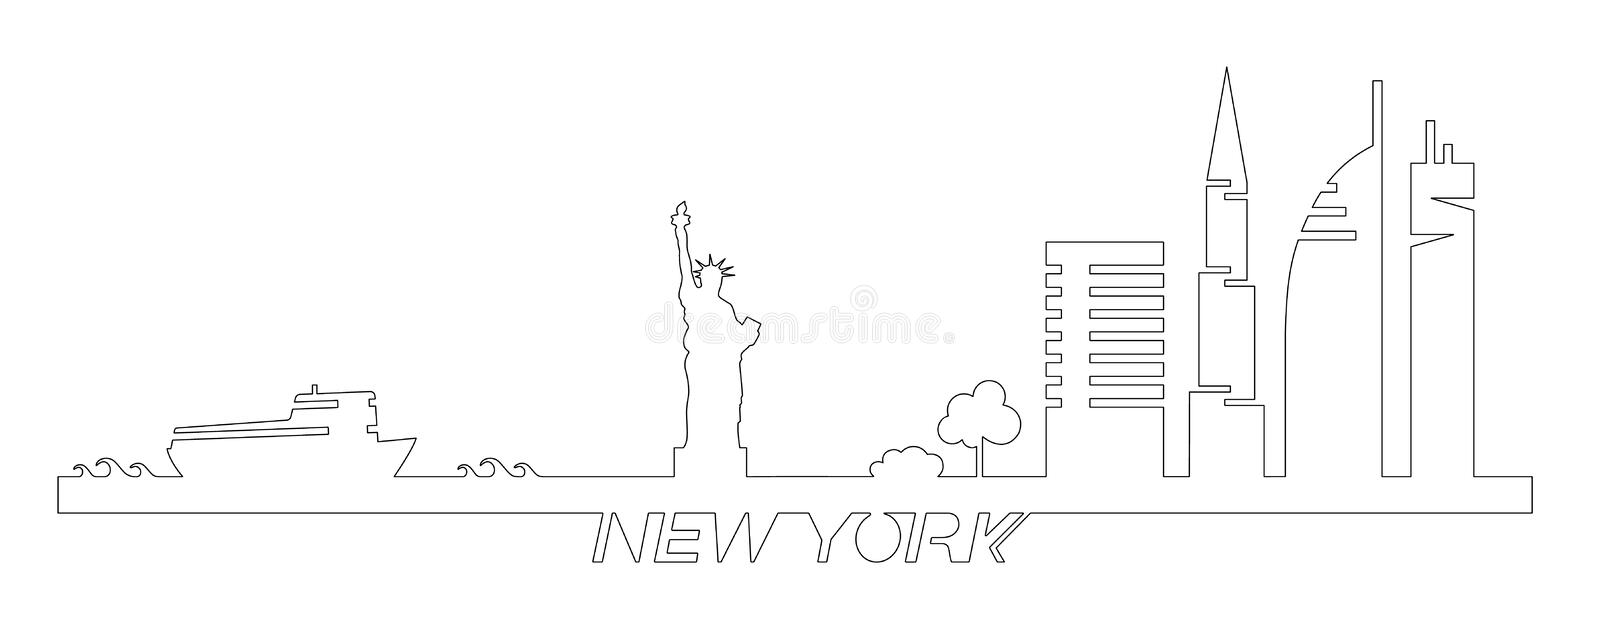 Flat artistic vector design of New York city buildings, skyscrapers, Statue of Liberty shape silhouettes drawn in minimalism slyle royalty free illustration